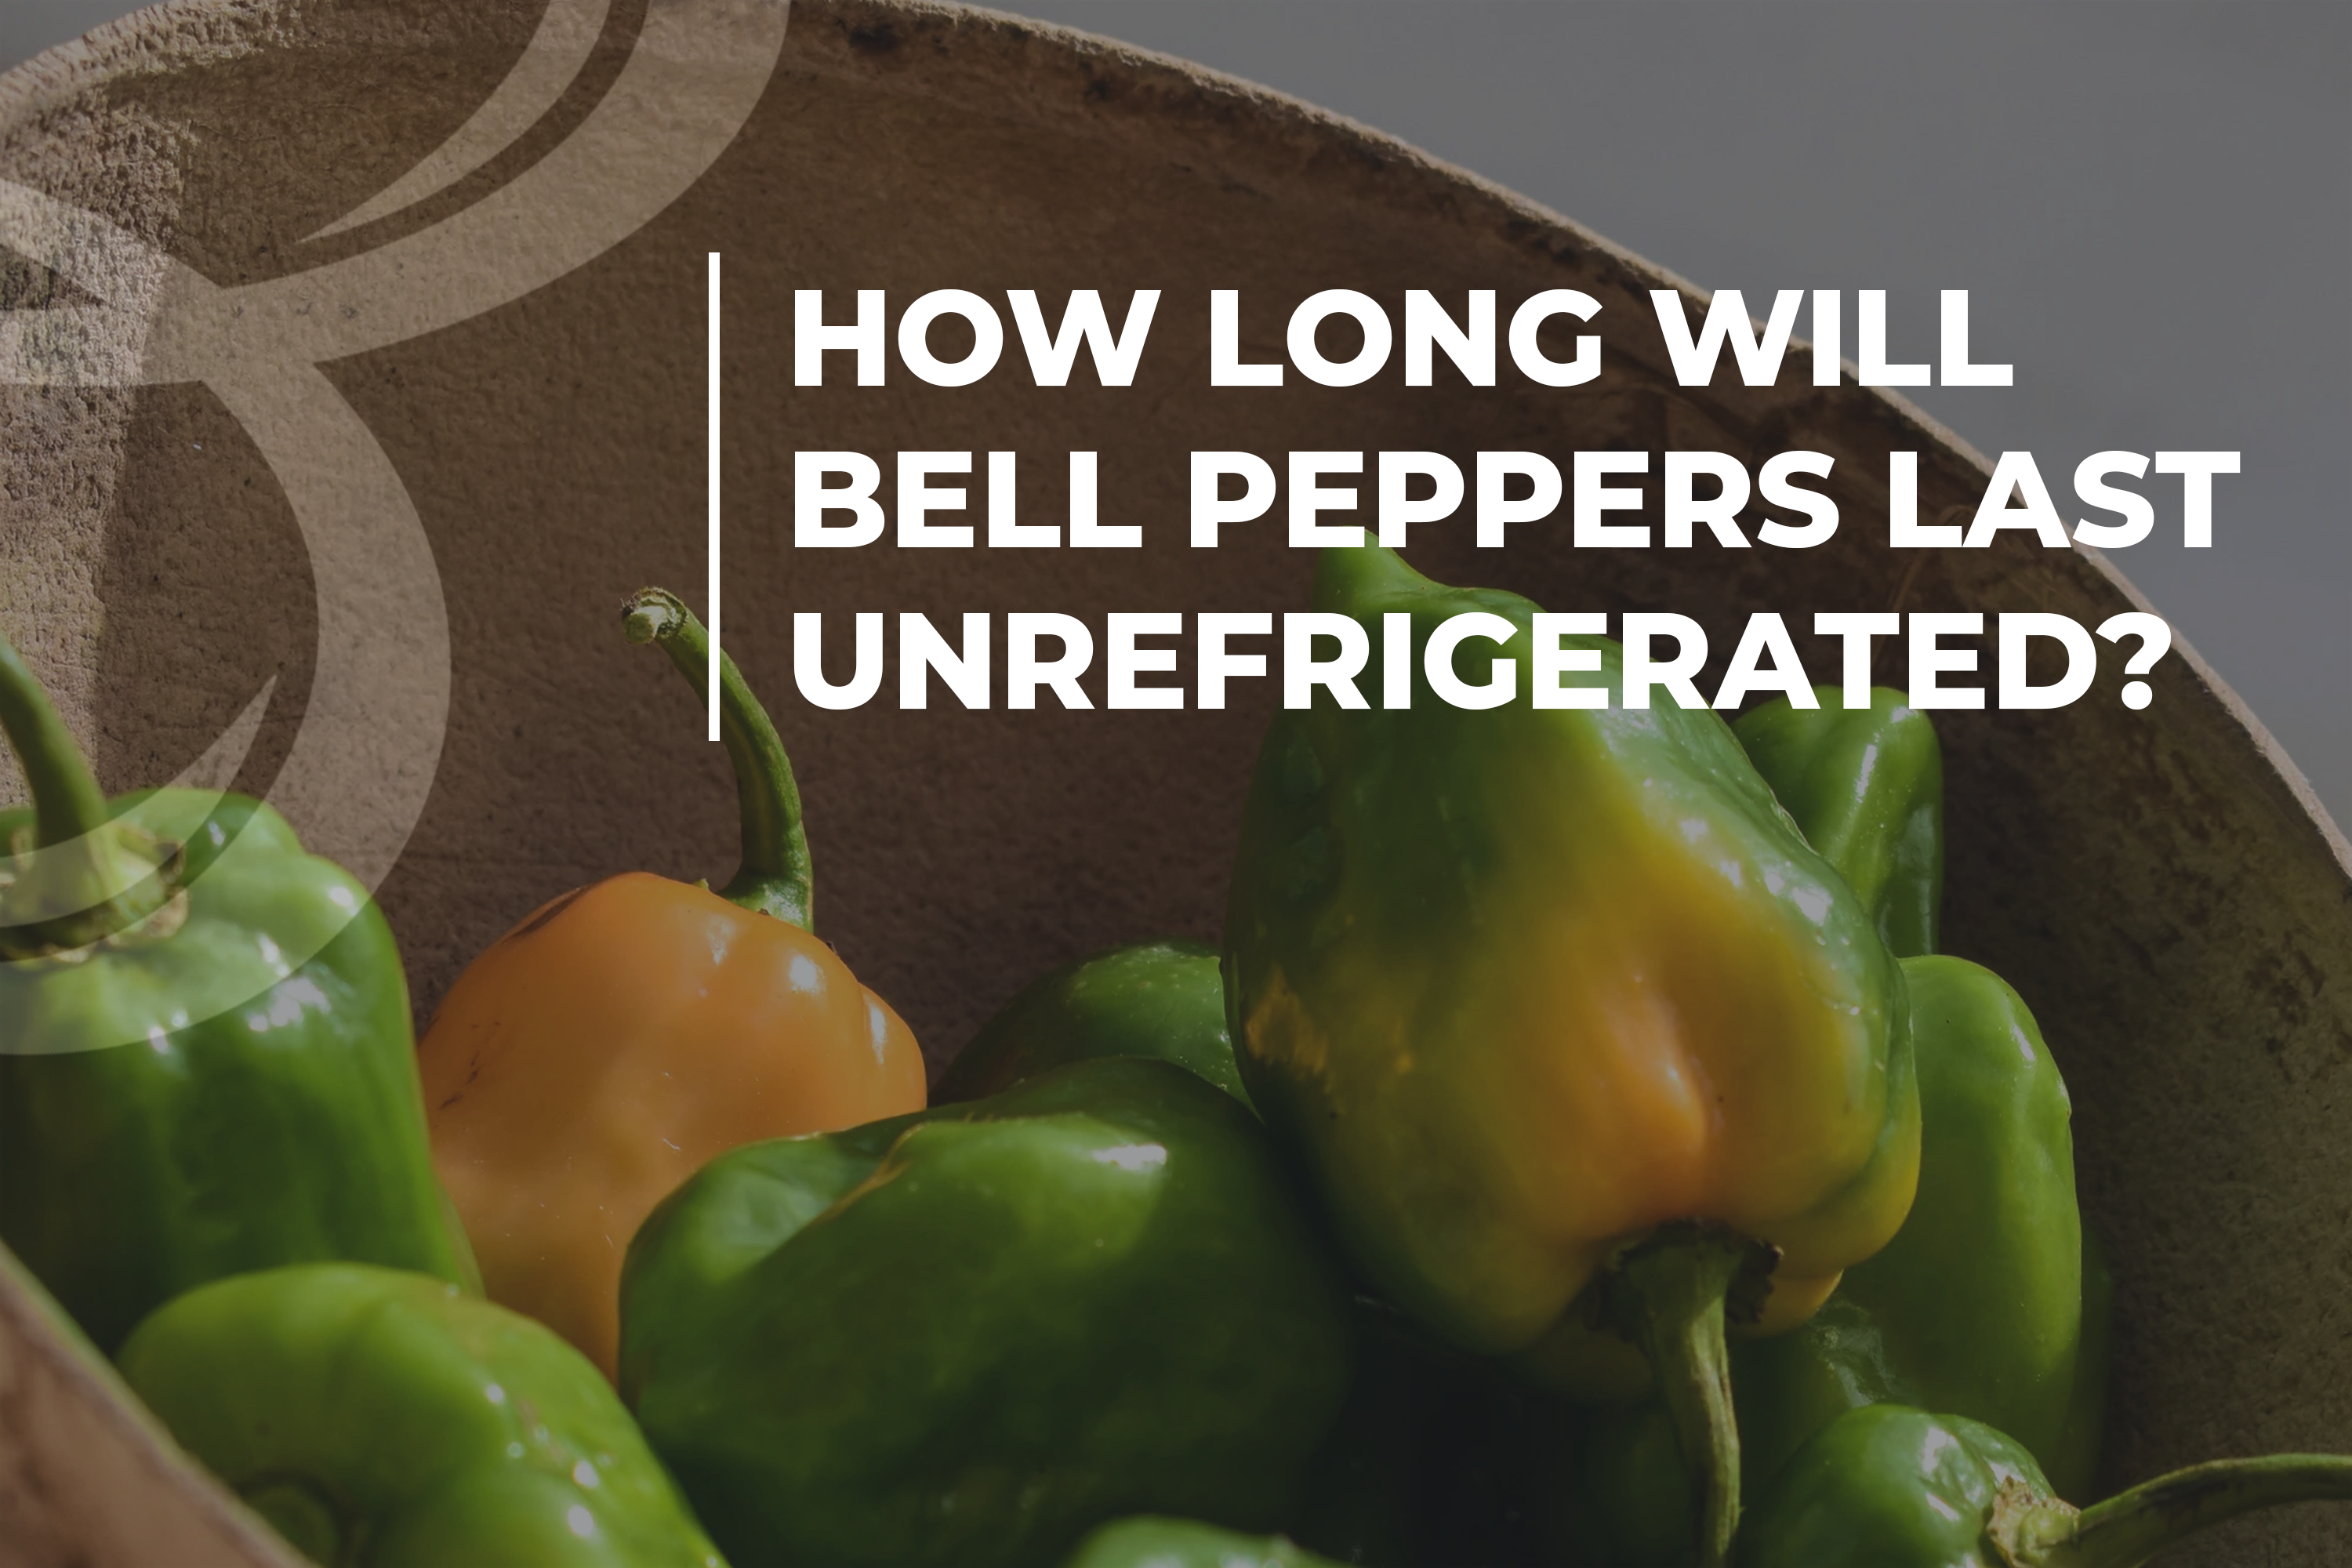 How long will bell peppers last unrefrigerated